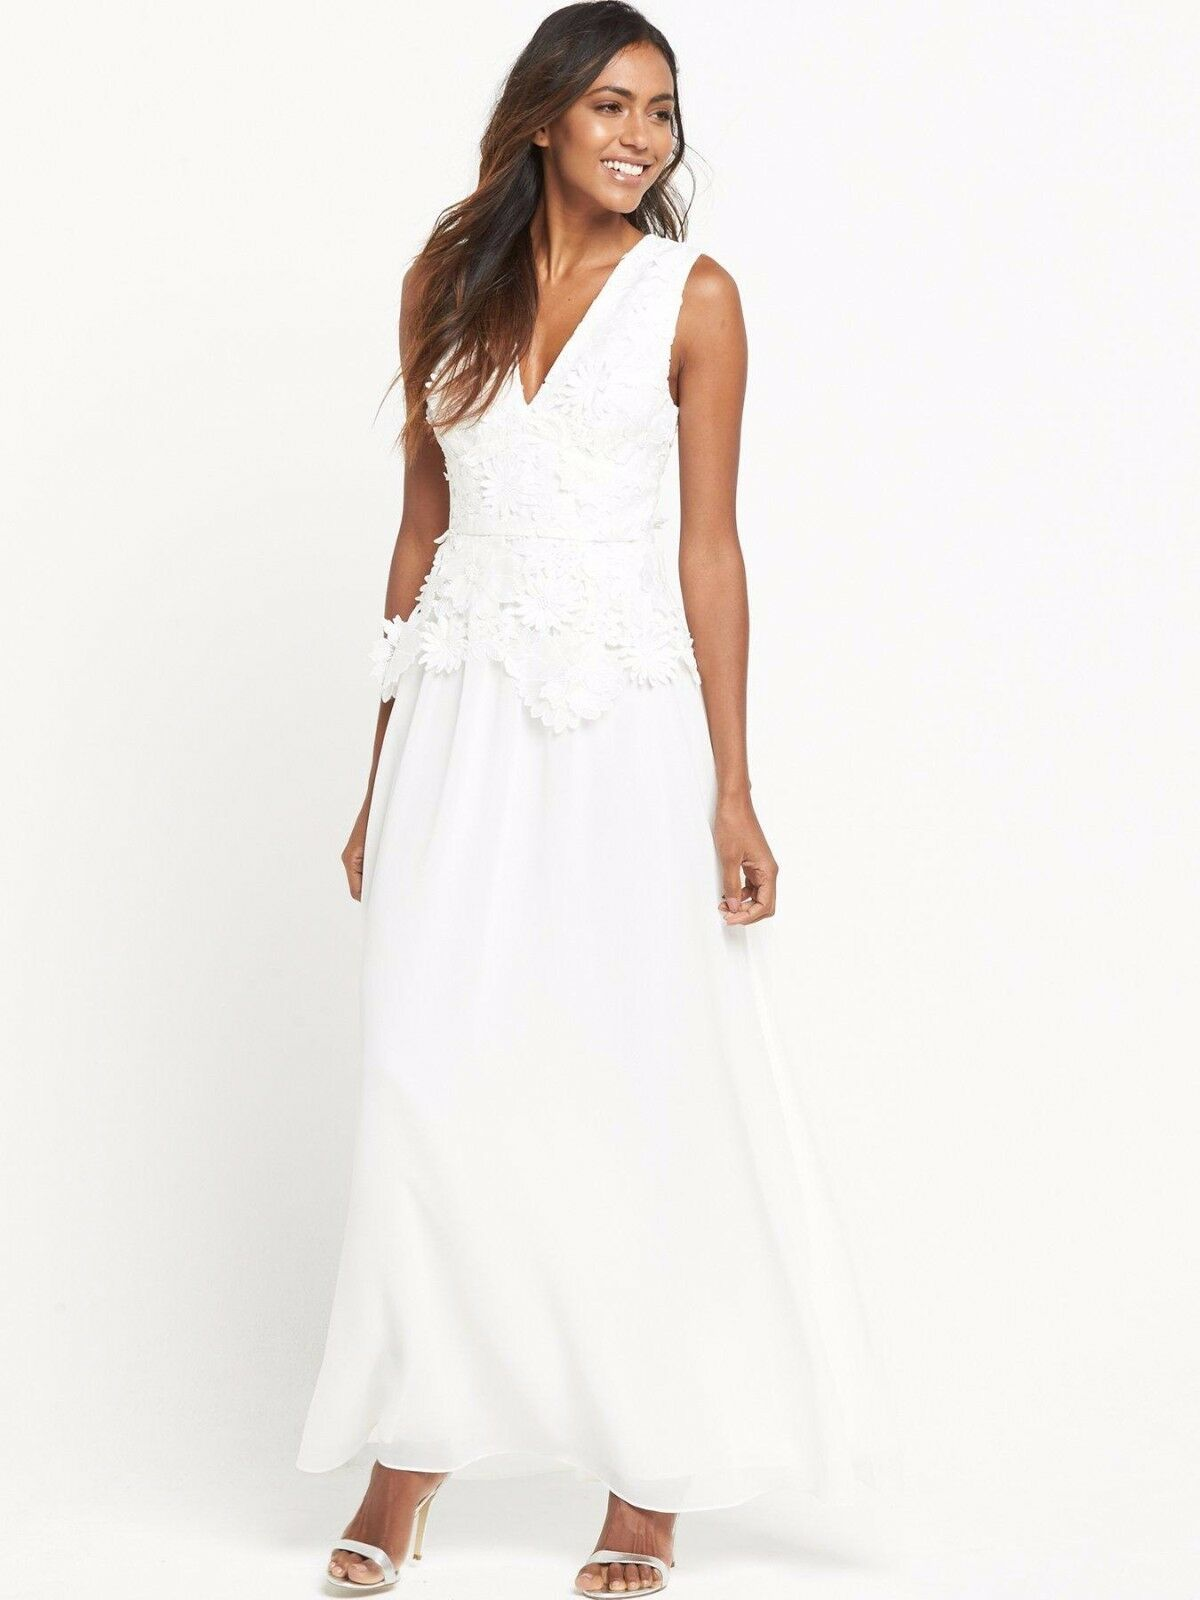 French Connection Bianco Bianco Bianco 3D Floreale Ricamato Maxi Party Cocktail Dress 10 38 3969a3